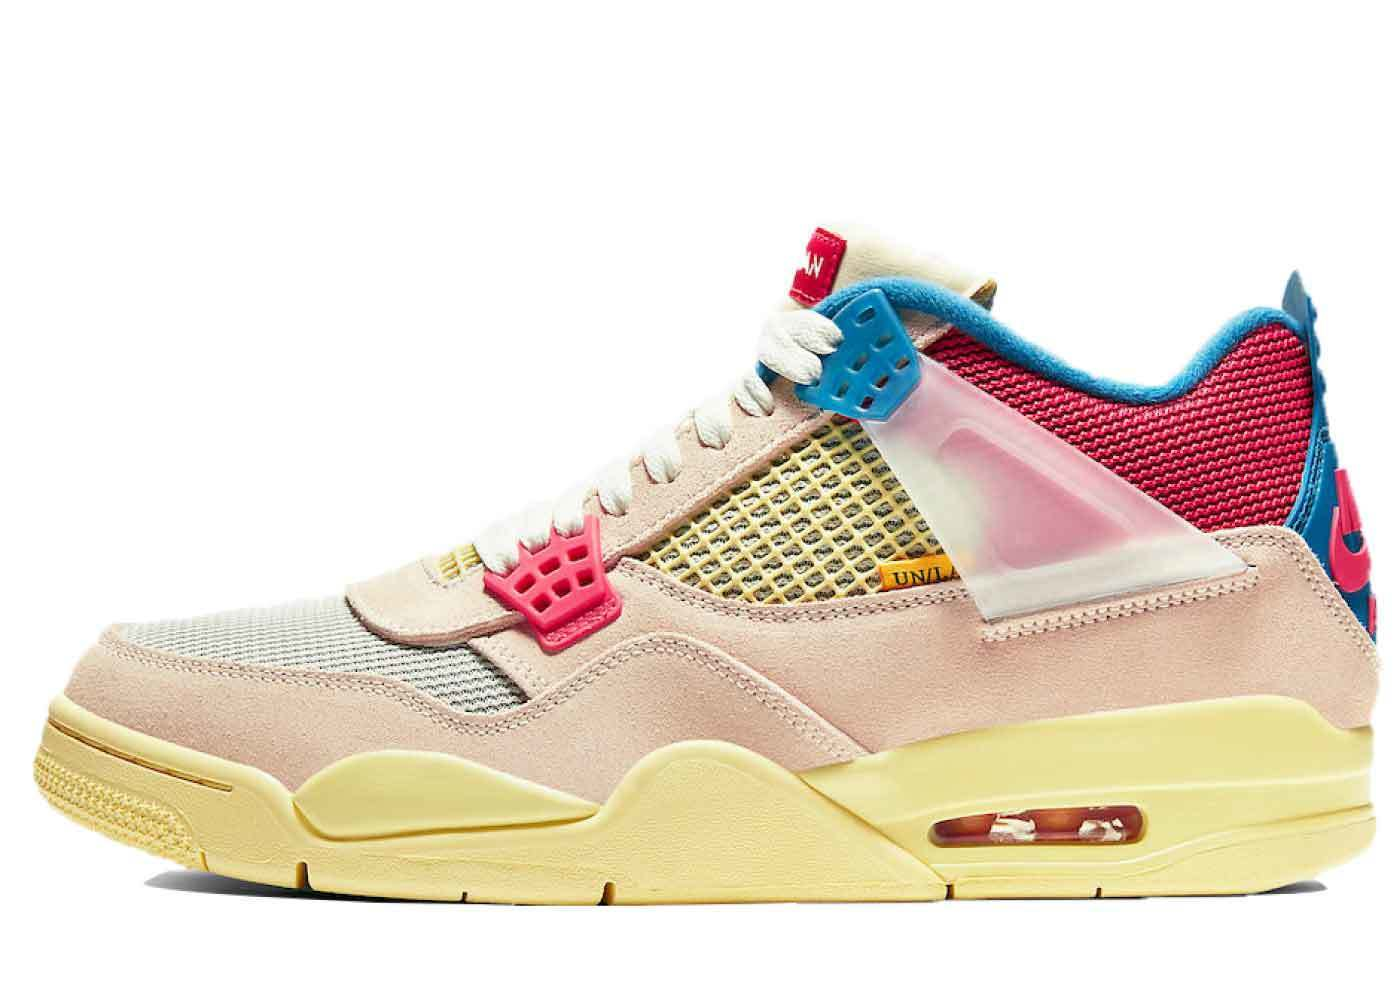 Union Los Angeles × Nike Air Jordan 4 Retro Guava Iceの写真